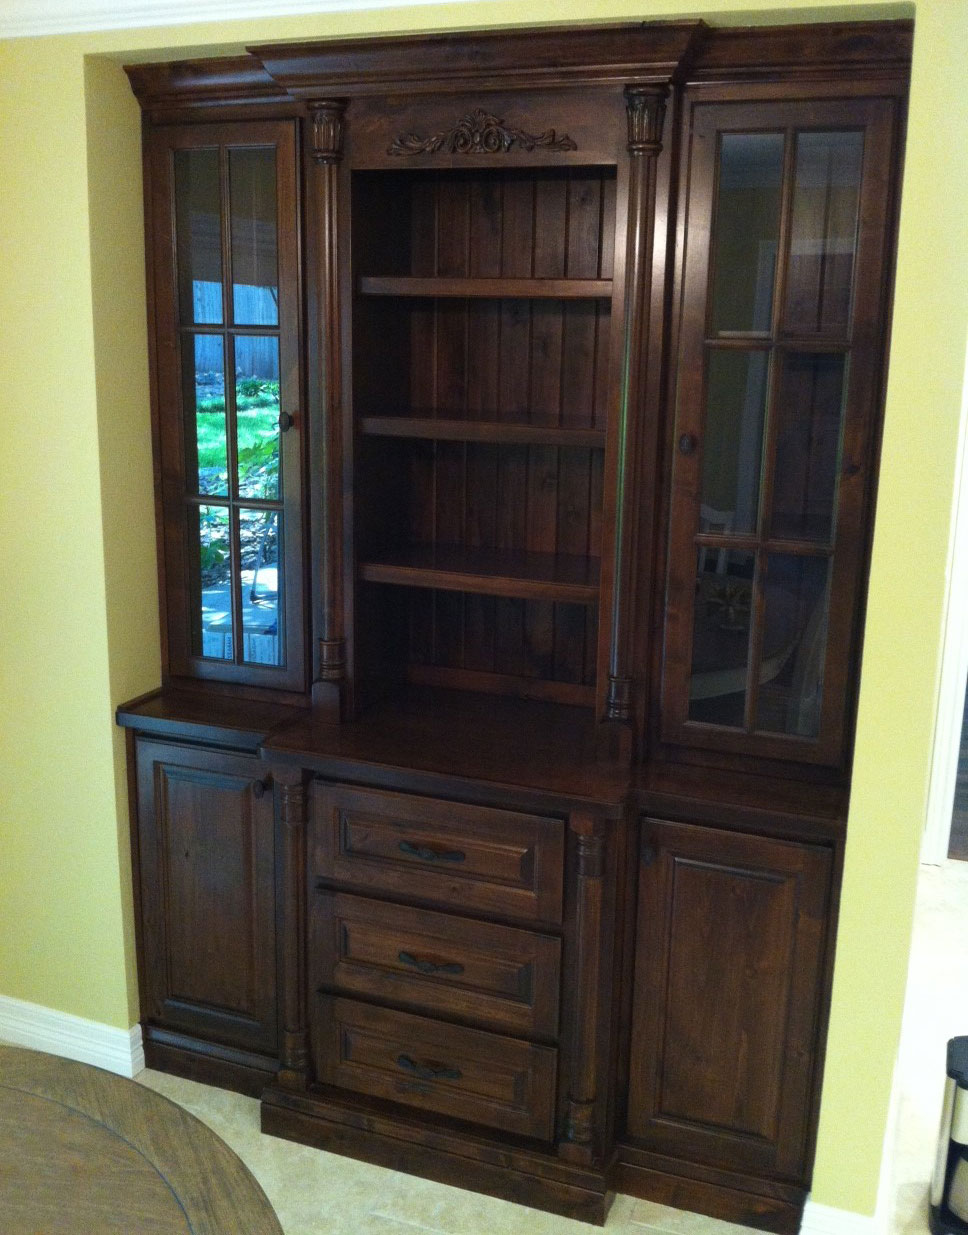 Hutch in knotty alder with bead board back panel, cope and stick glass upper cabinet doors, solid-panel lower cabinet doors and drawer fronts